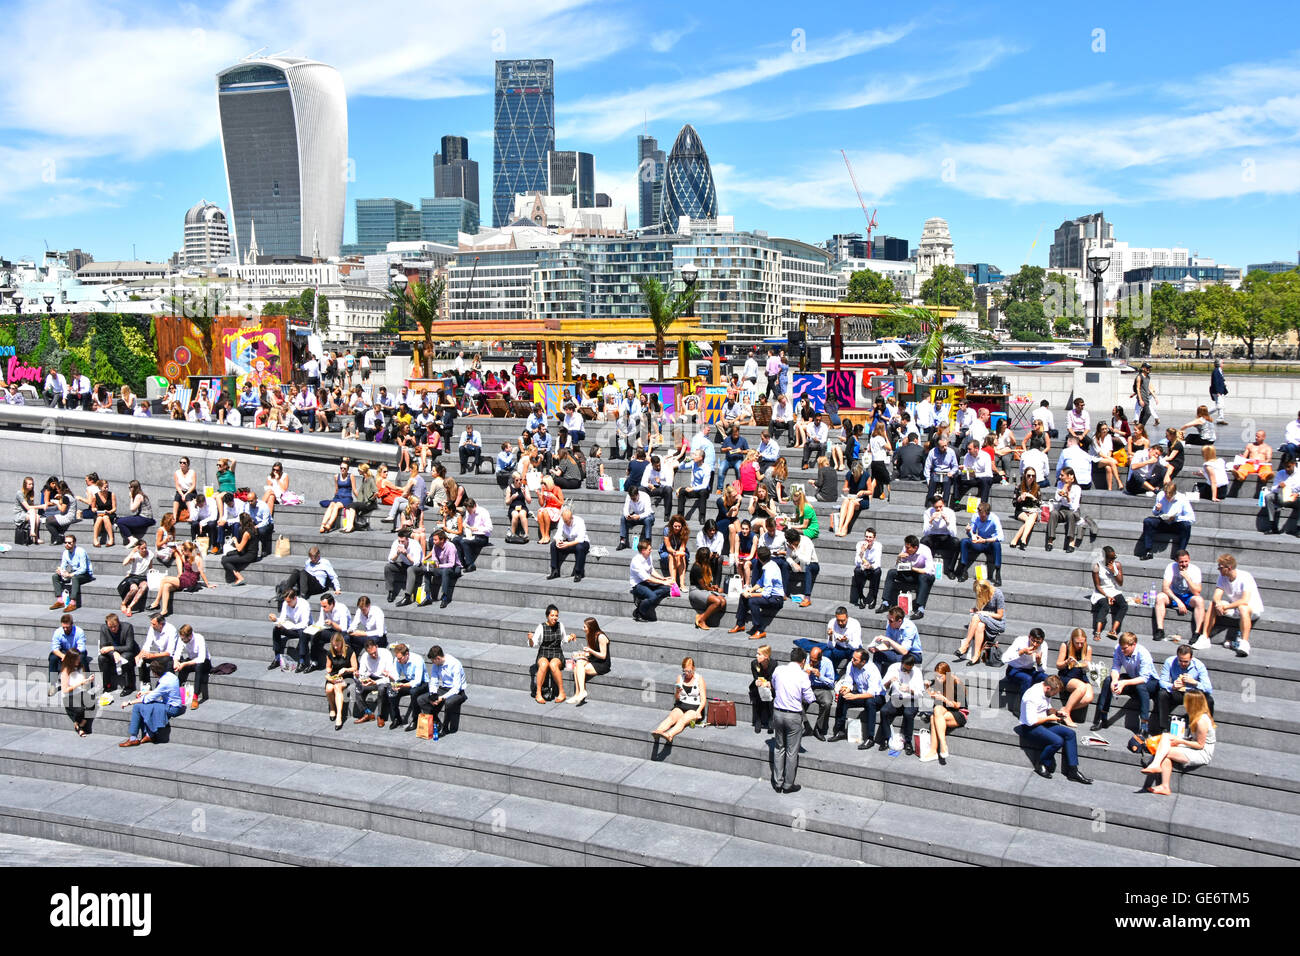 Southwark office workers taking hot sunny lunch break at the More London Scoop riverside amphitheatre with City - Stock Image